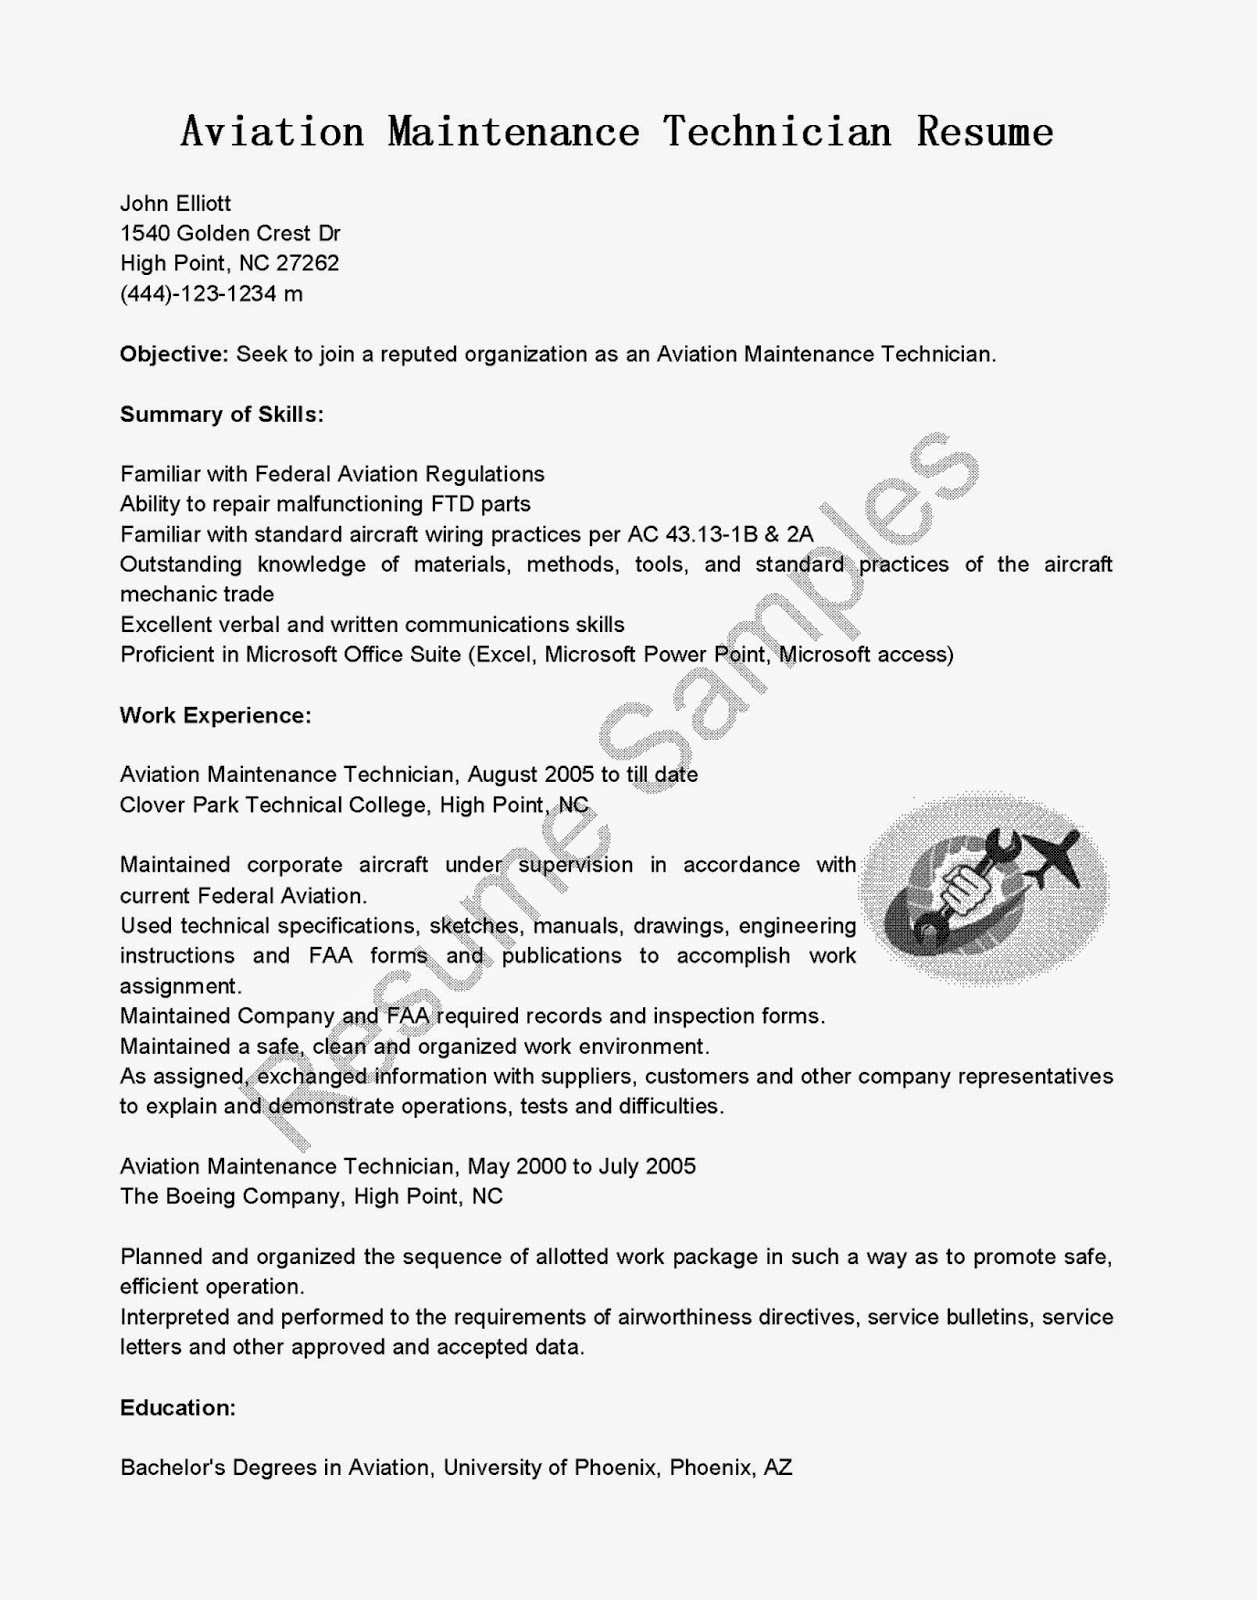 model resume format airline pilot resume template targeted promo pilot resume pdf blank templates accounting assistant - Pilot Resume Template